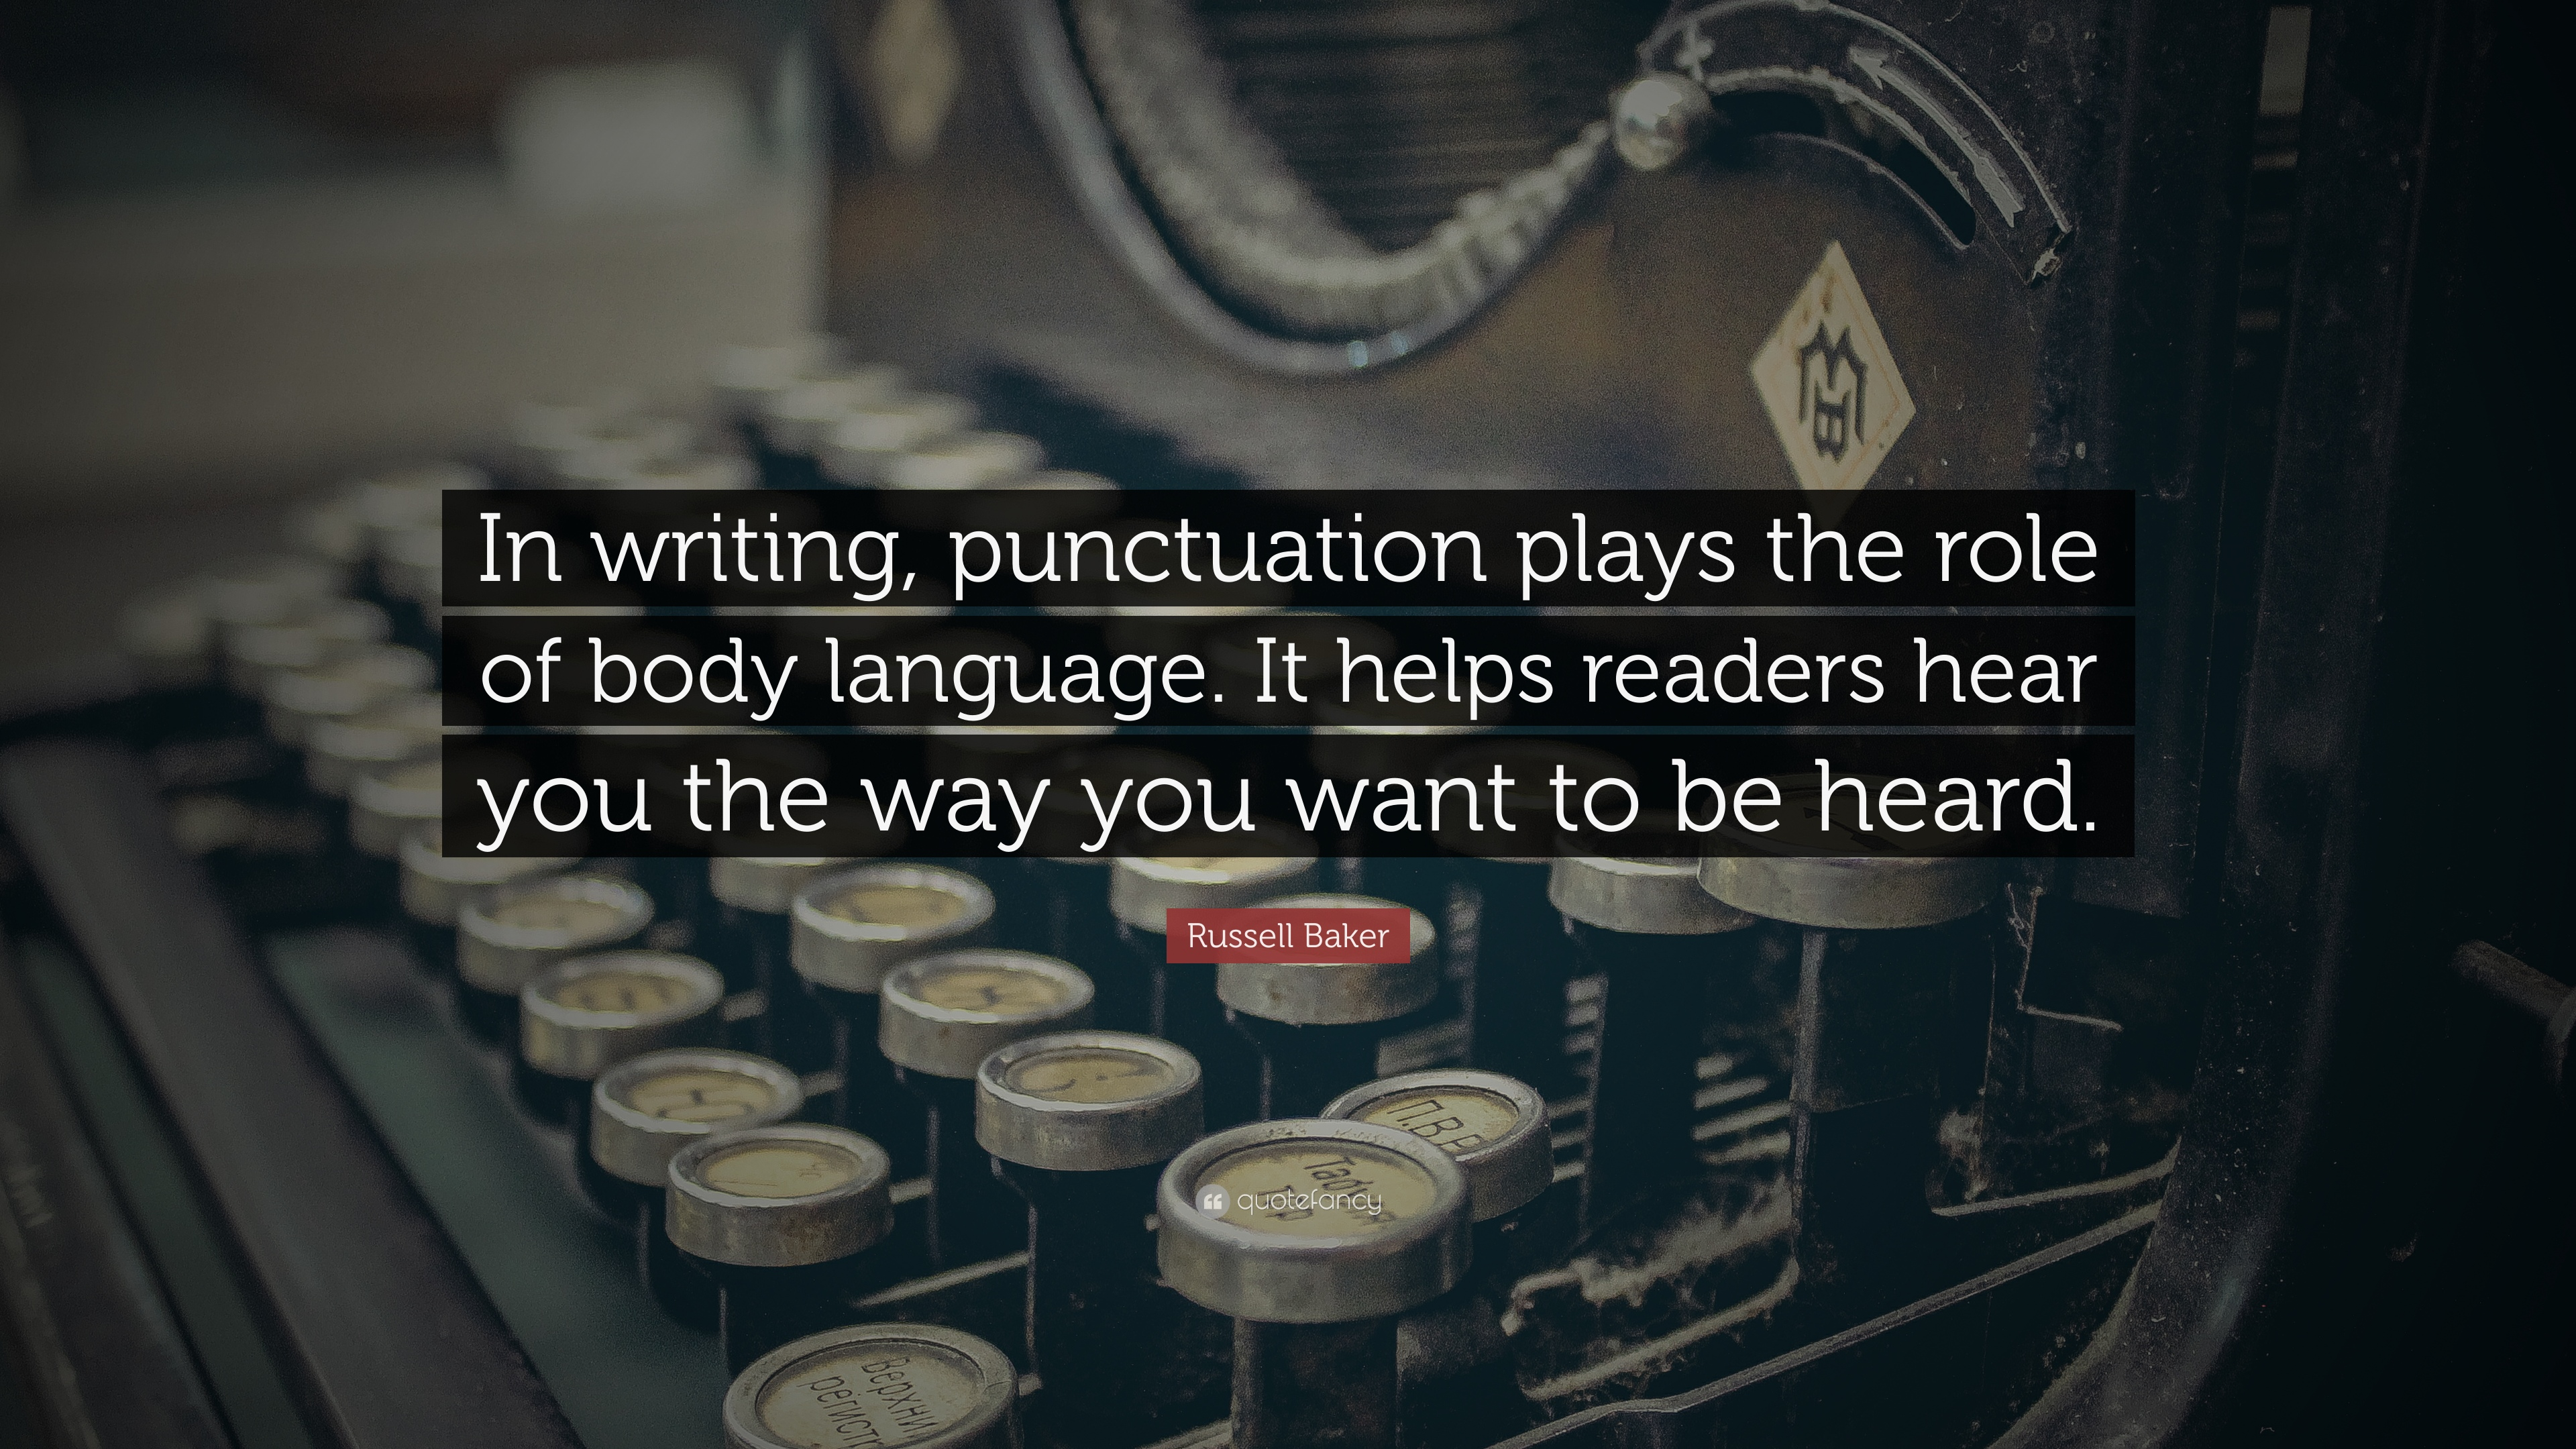 russell baker quote   u201cin writing  punctuation plays the